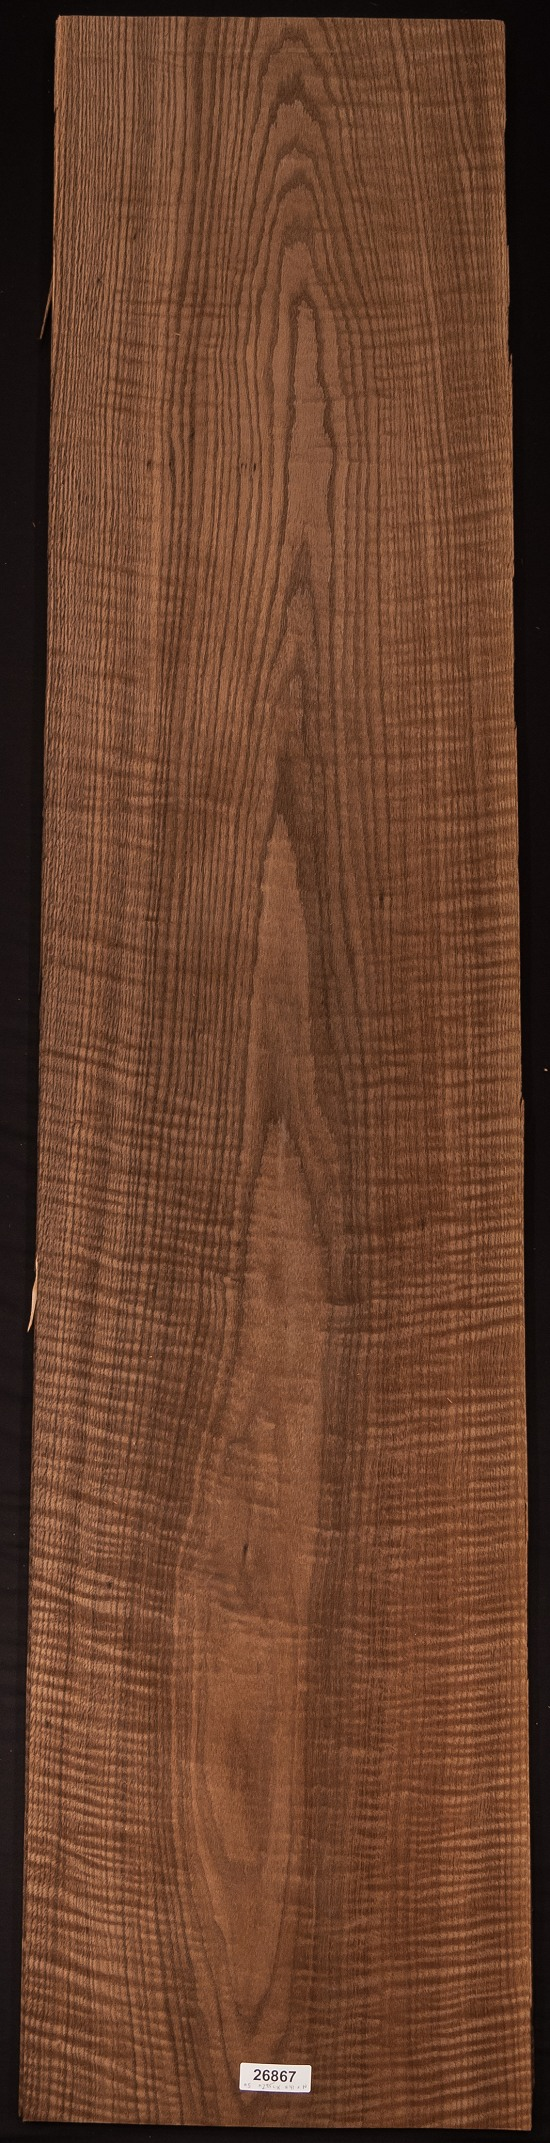 AAA Curly/Smoked Oak (Red) Veneer Sheet